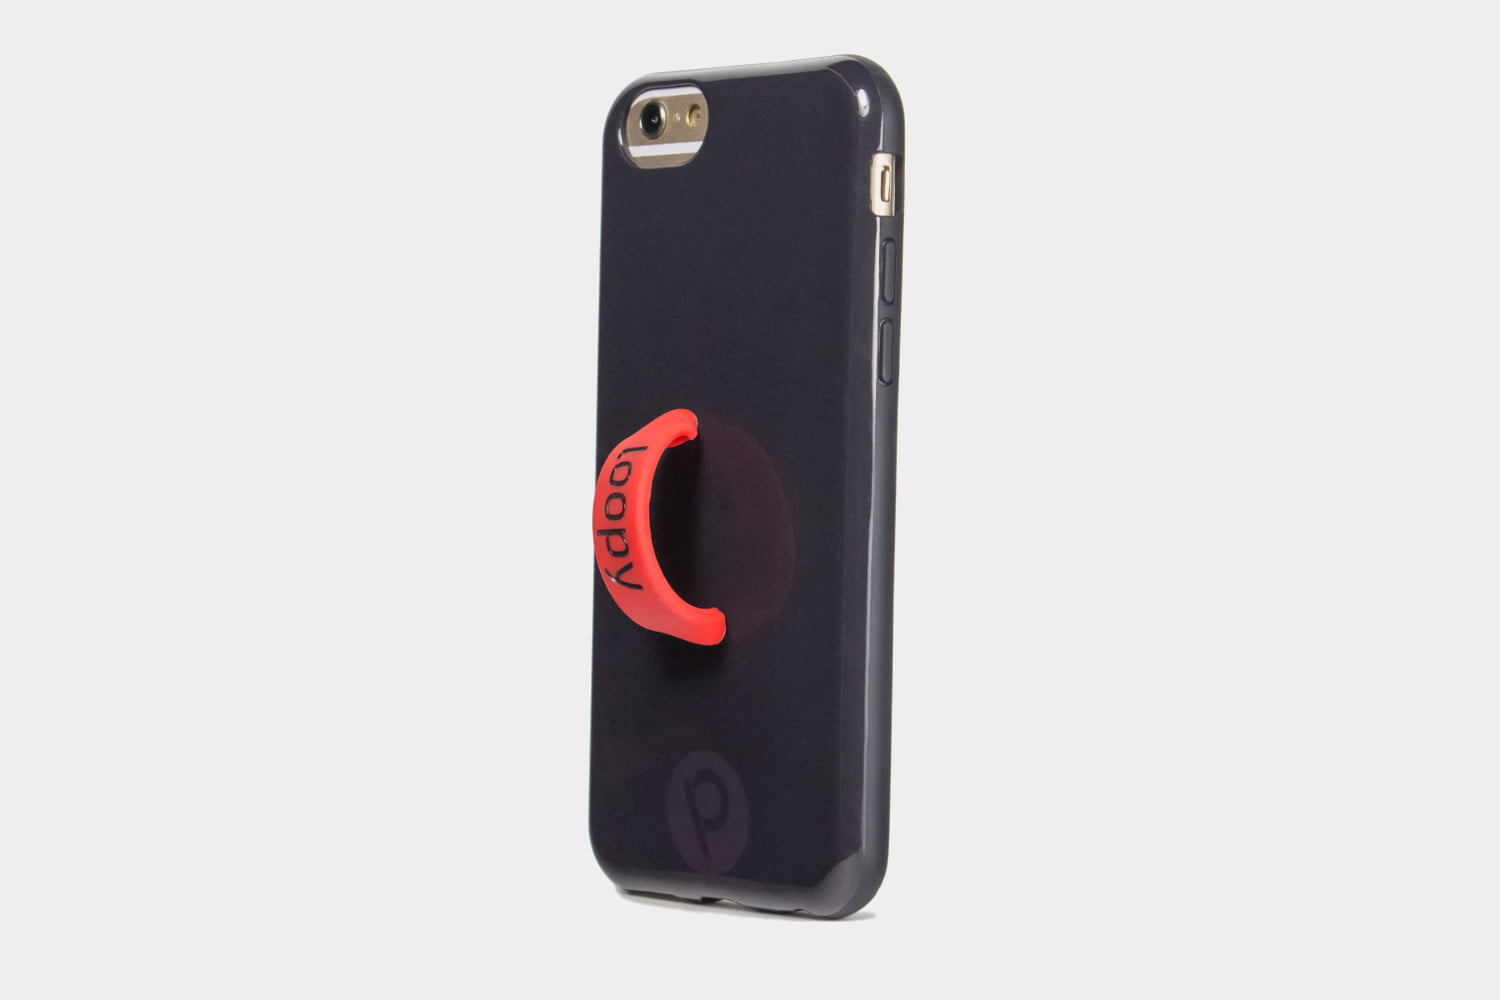 the best iphone 6 cases and covers digital trendswith your iphone 6 when trying to juggle it with your keys, coffee cup, and whatever else you\u0027re holding? then you\u0027re going to love the loopy case